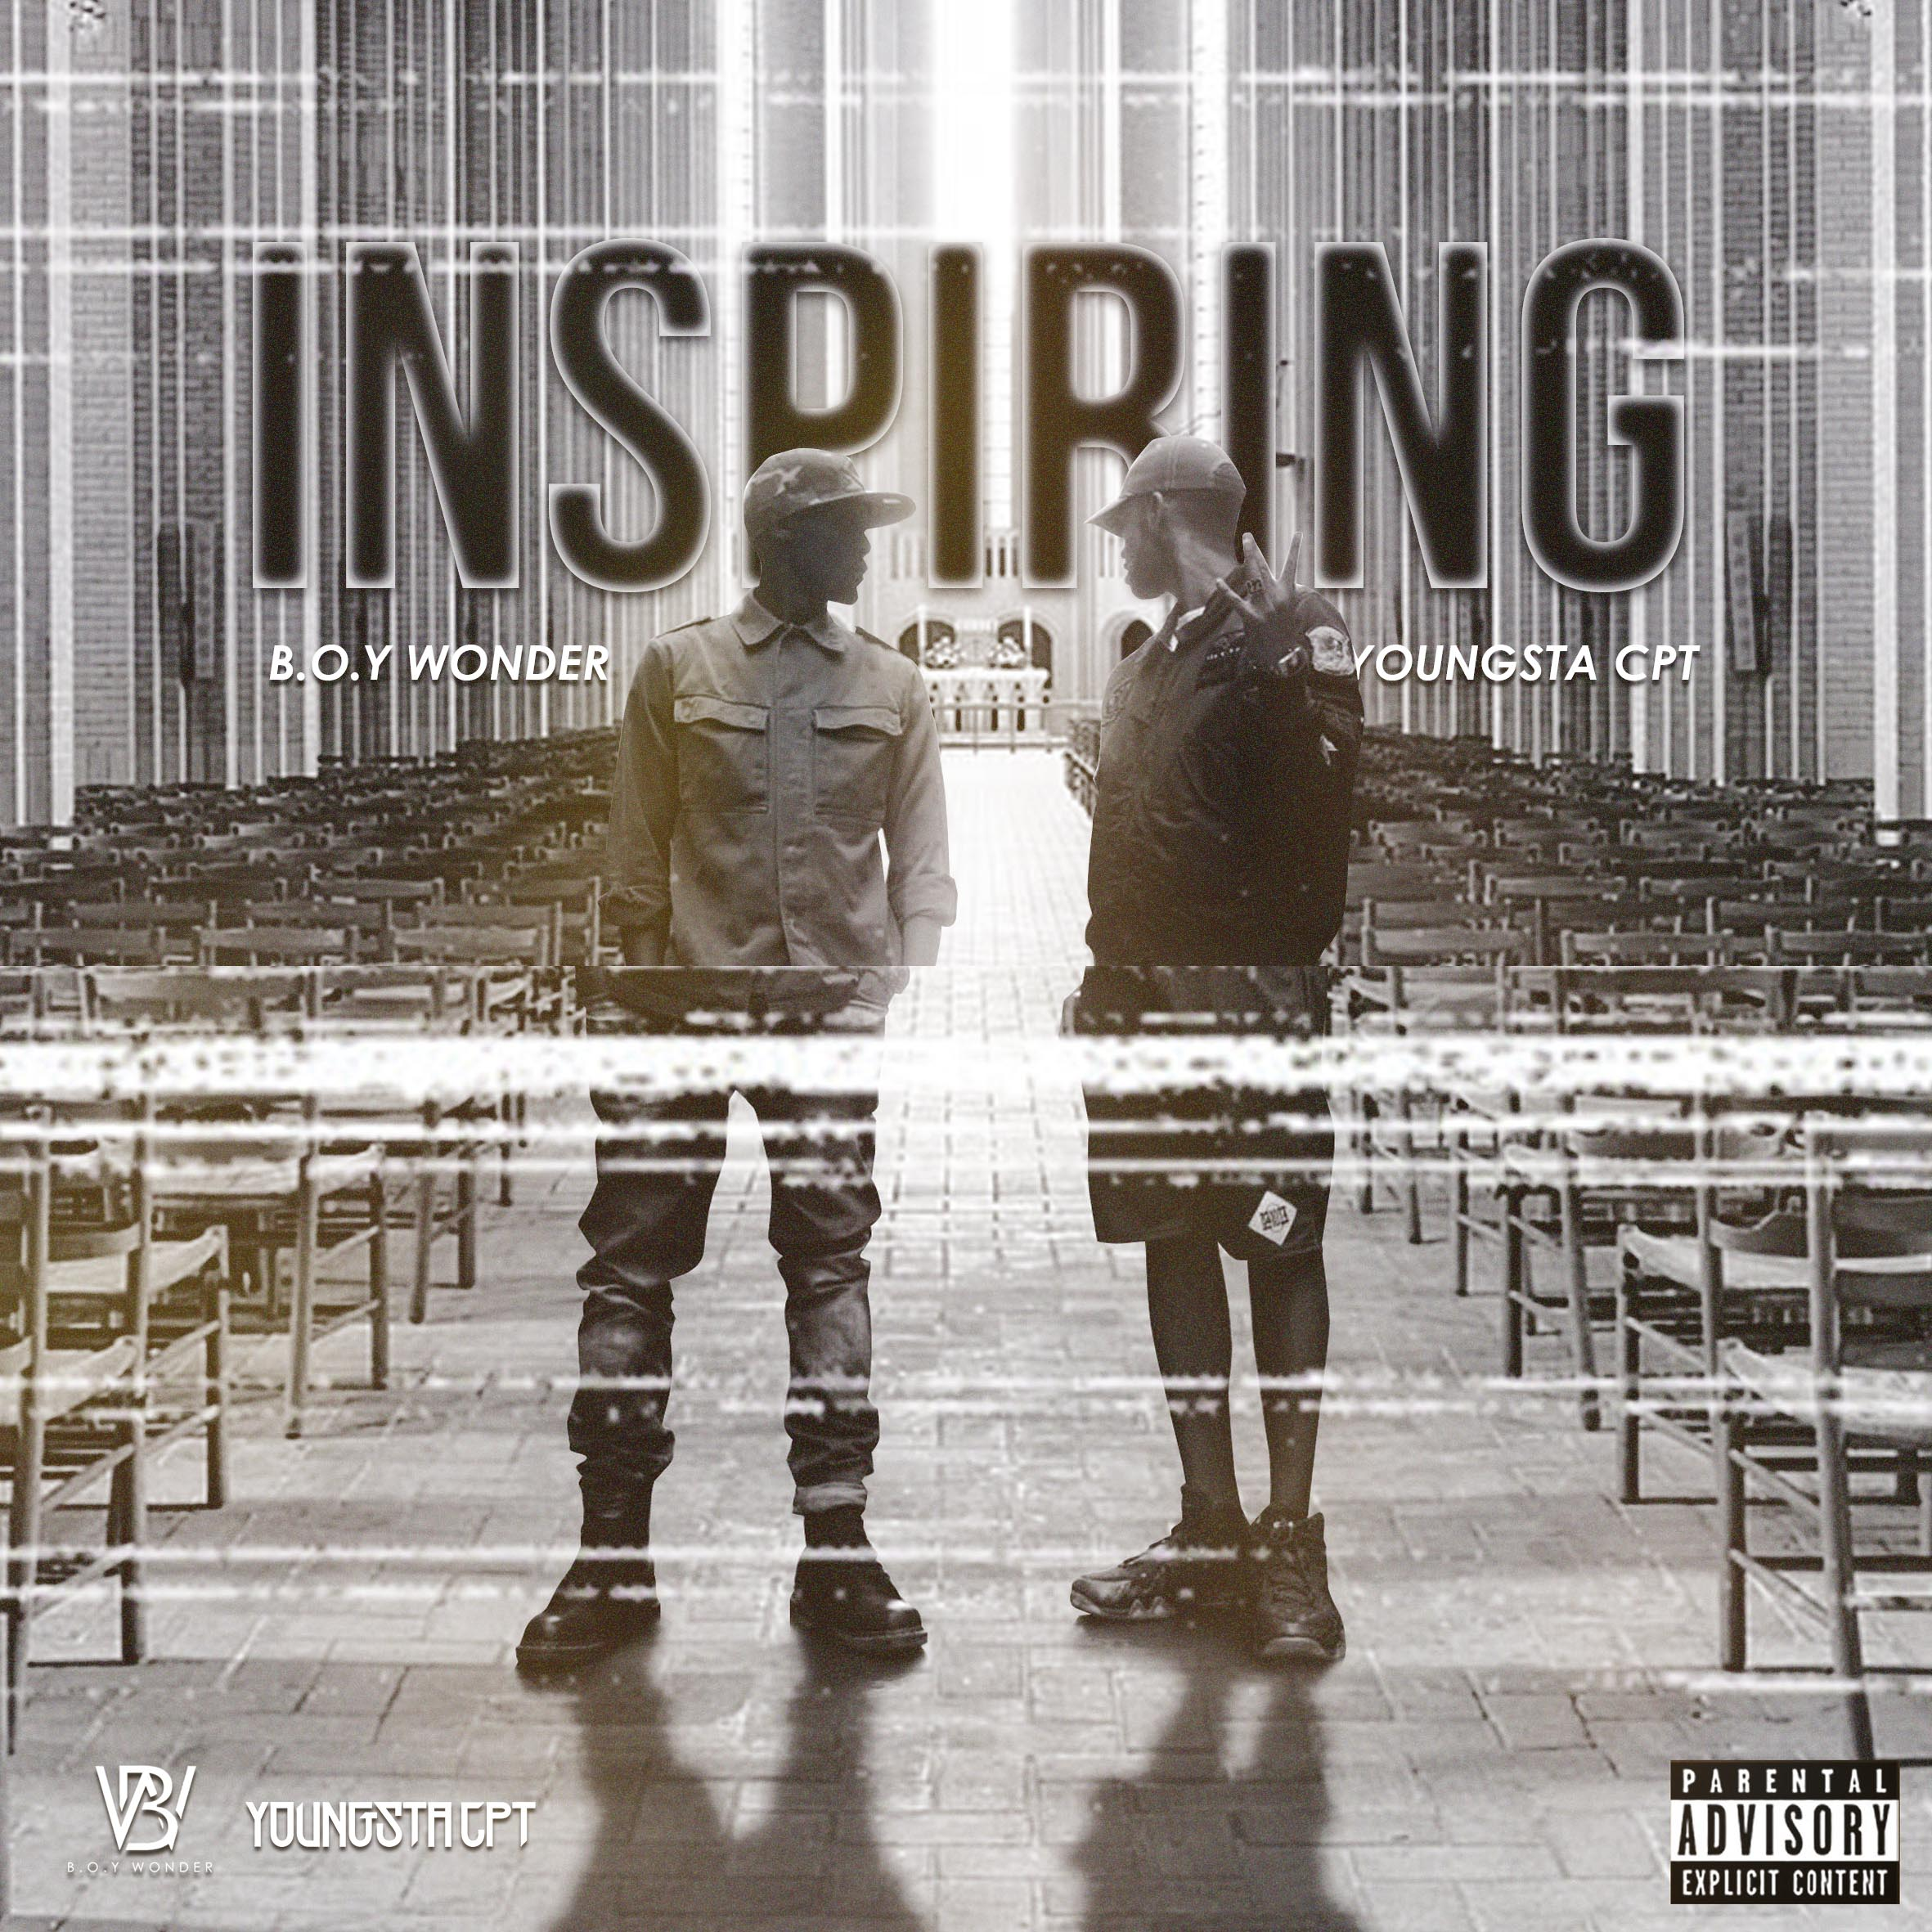 B.O.Y Wonder Drops New 'Inspiring' Joint Ft. Youngsta [Listen] INSPIRING